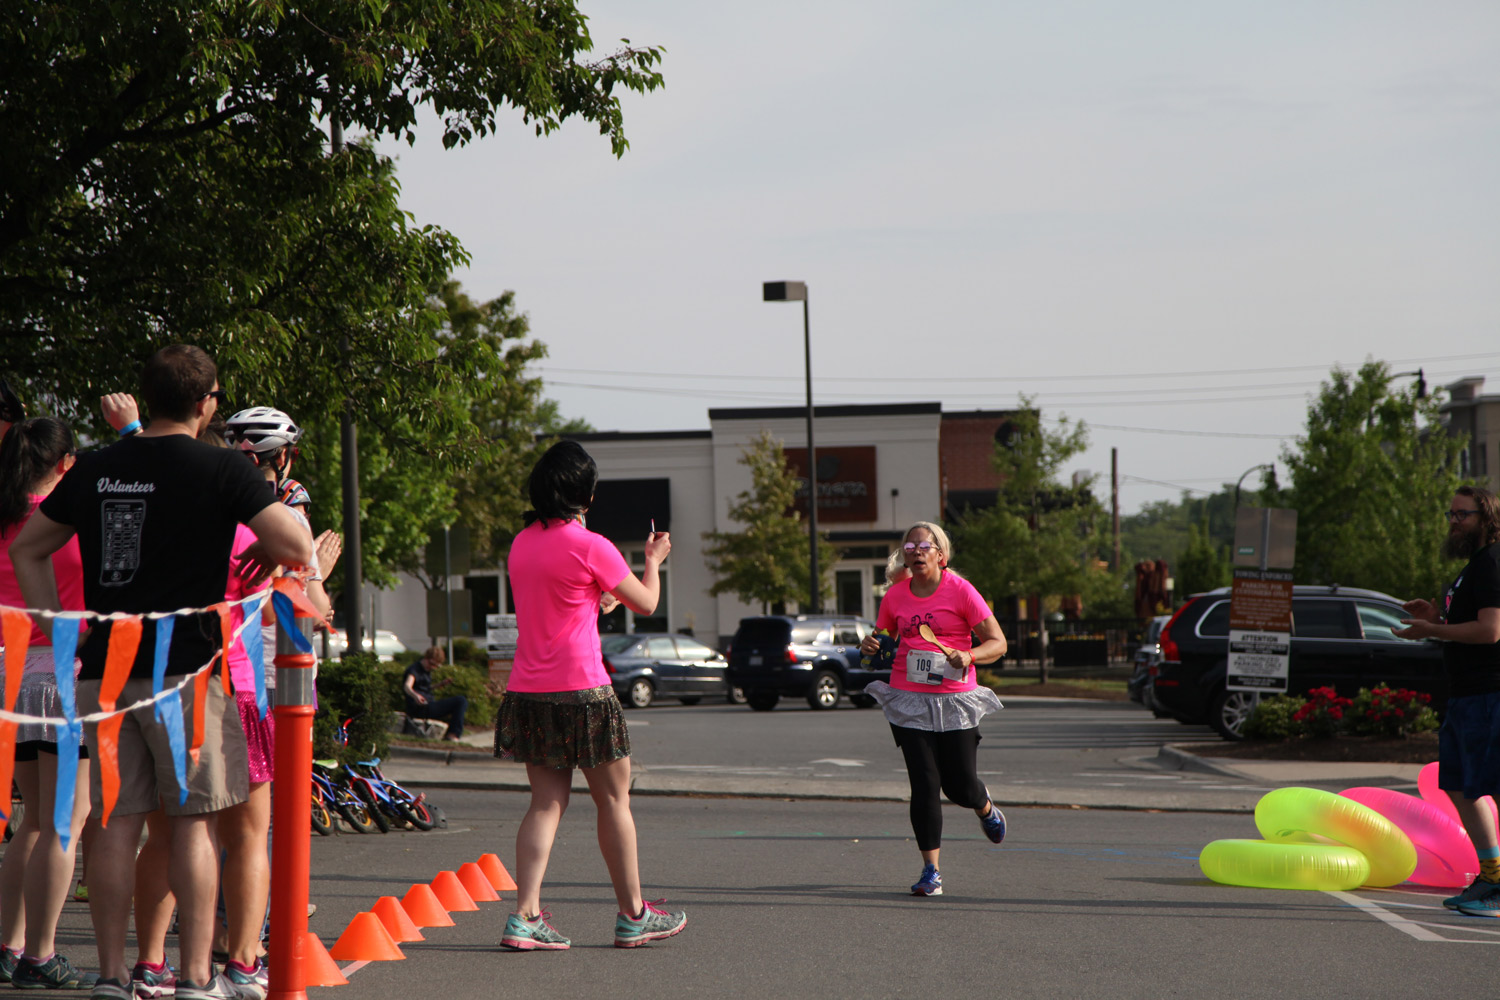 Jill finishing up her running leg and handing off the baton to Lauren. Photo courtesy of Michael Peace.